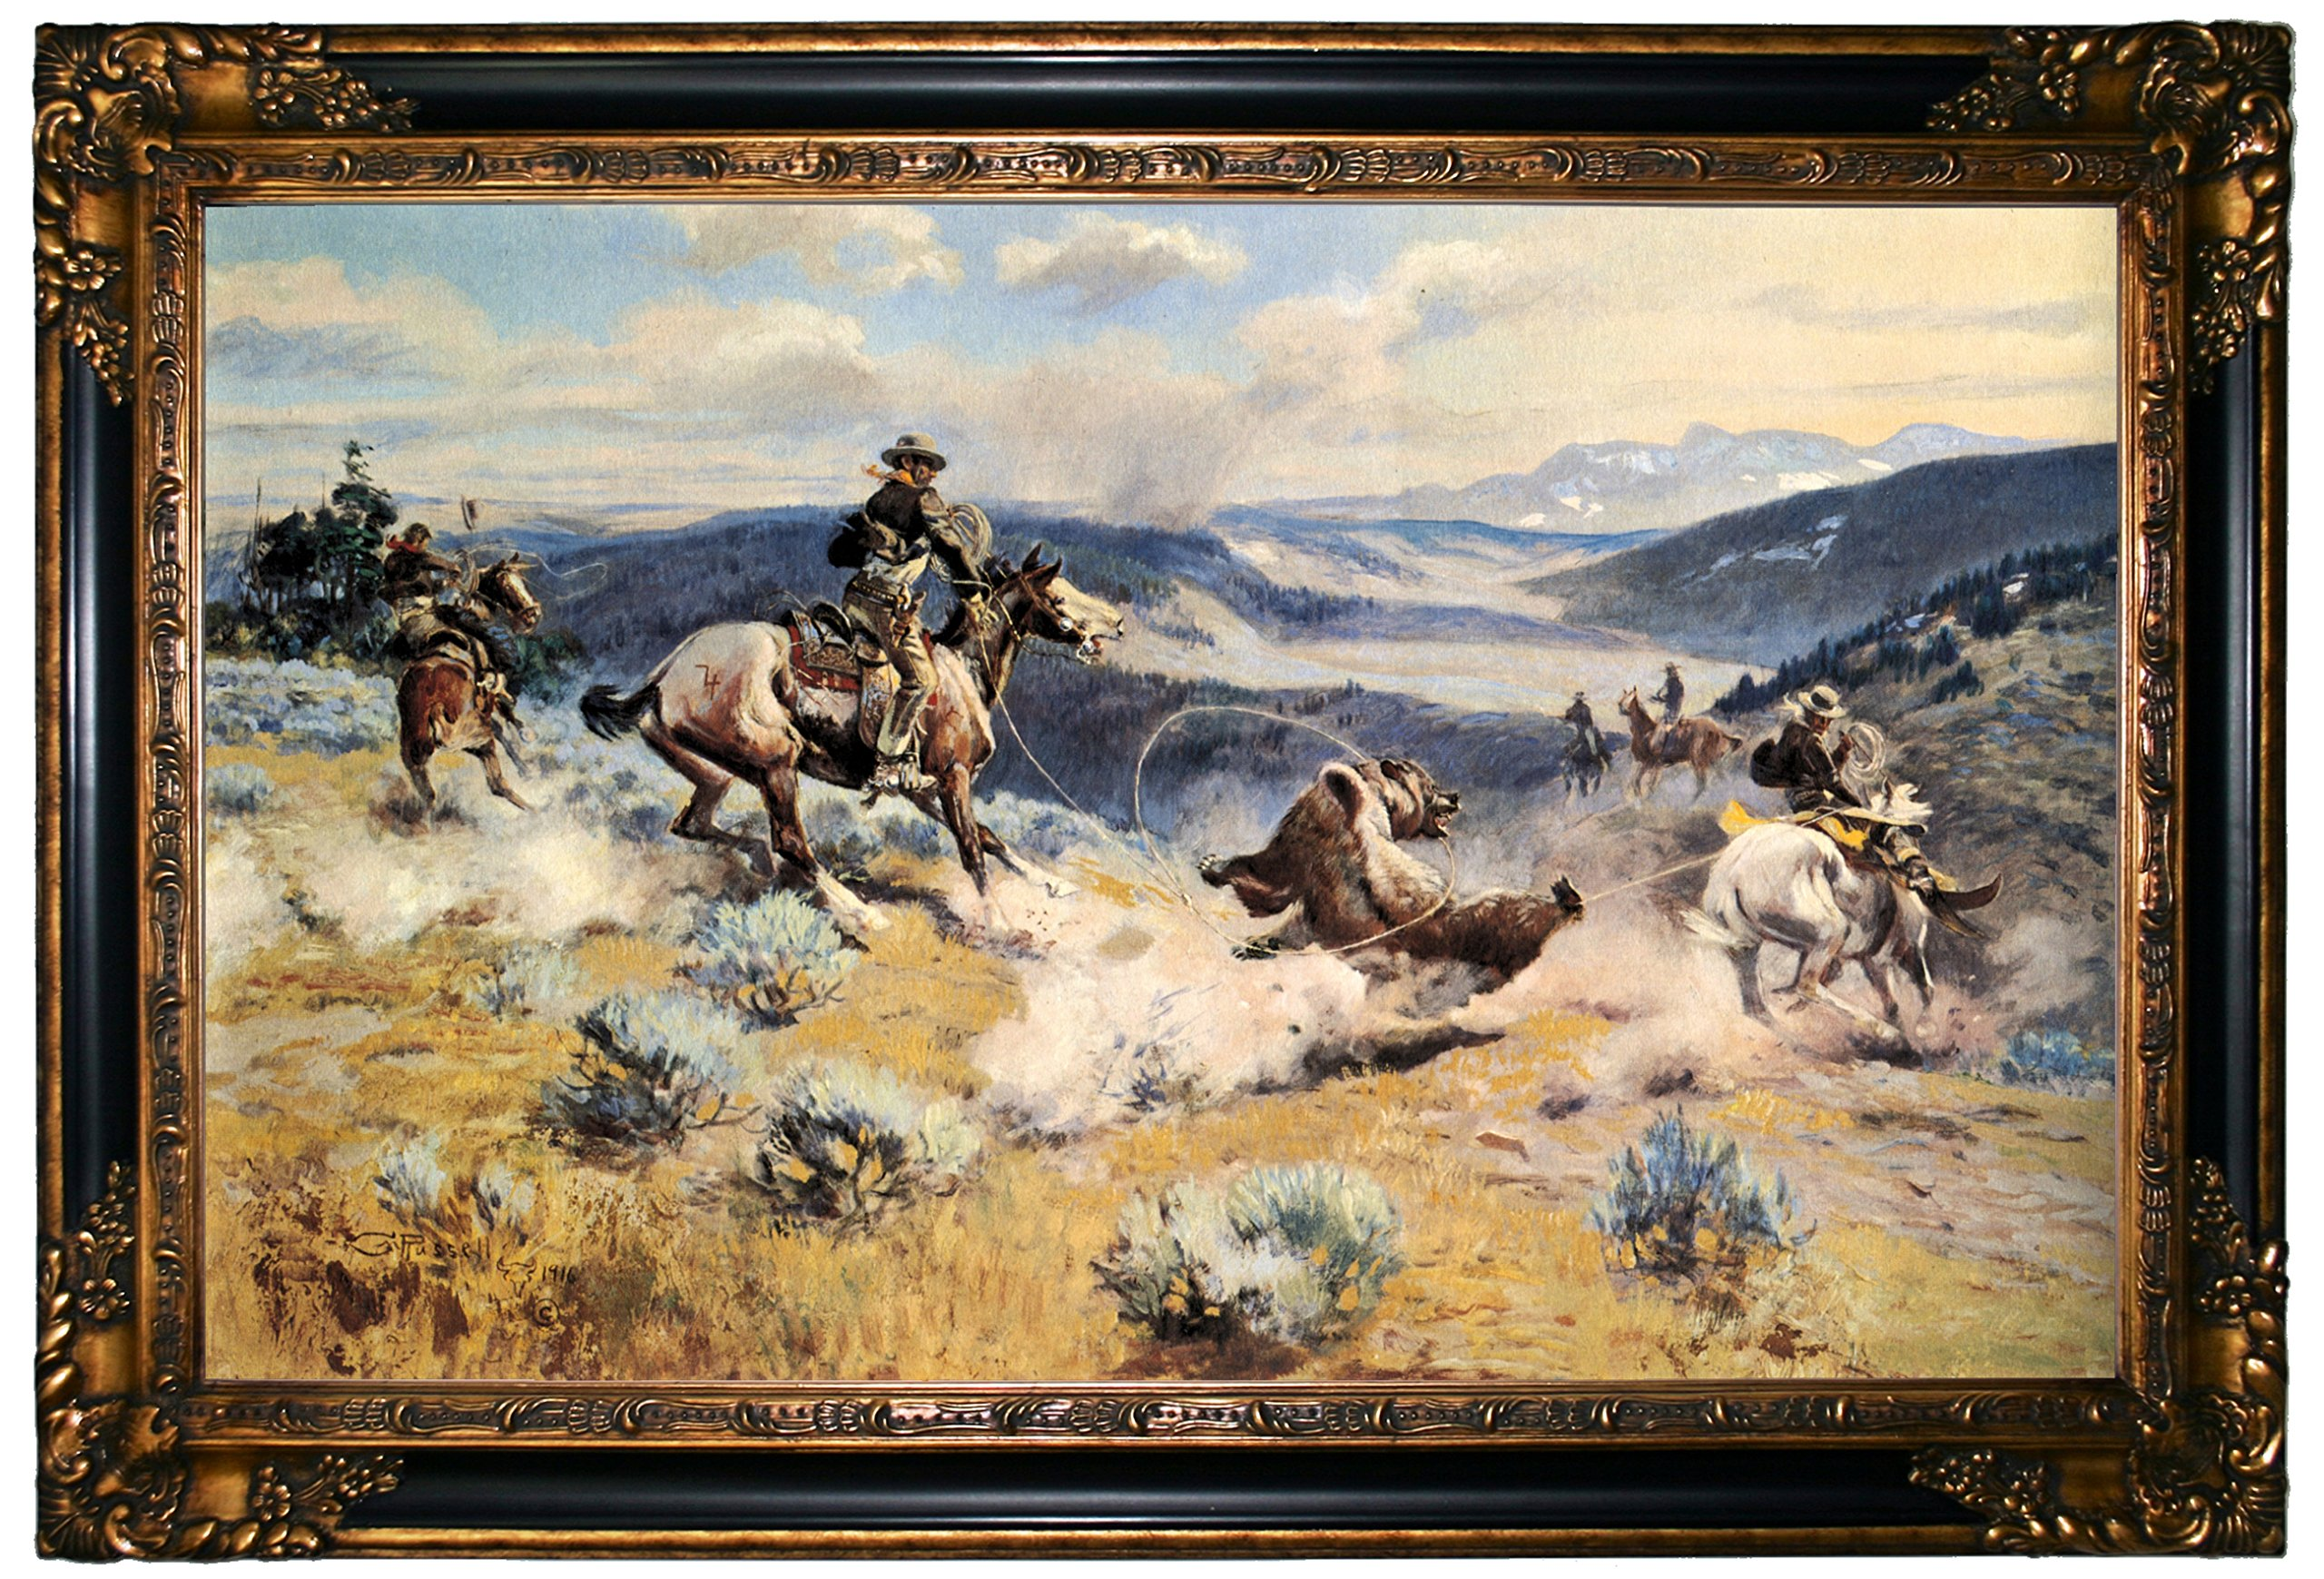 Historic Art Gallery Loops & Swift Horses Are Surer Than Lead by Charles Marion Russell Framed Canvas Print - Gold & Black Gallery - 19x32 by Historic Art Gallery